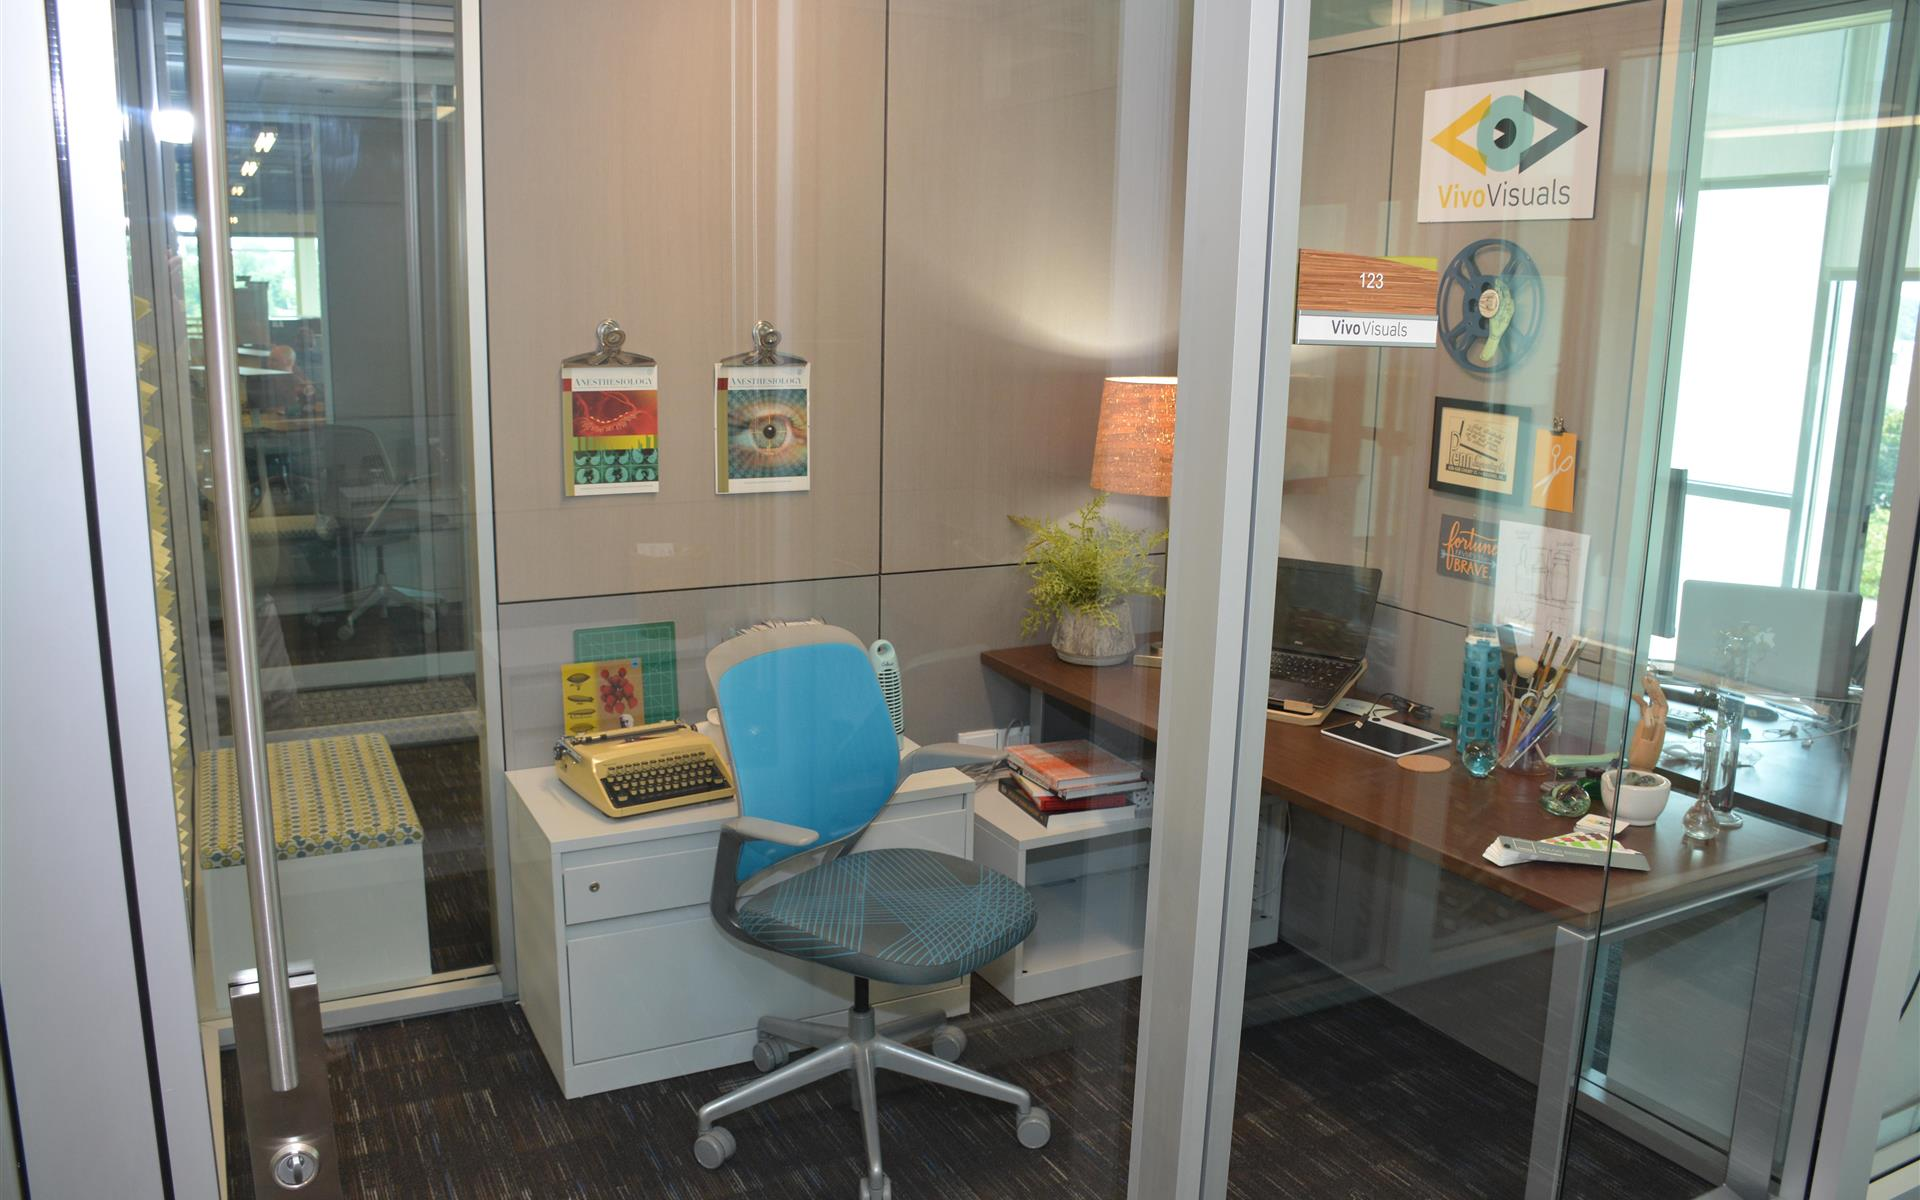 shared office space design. Shared Office Space Design G